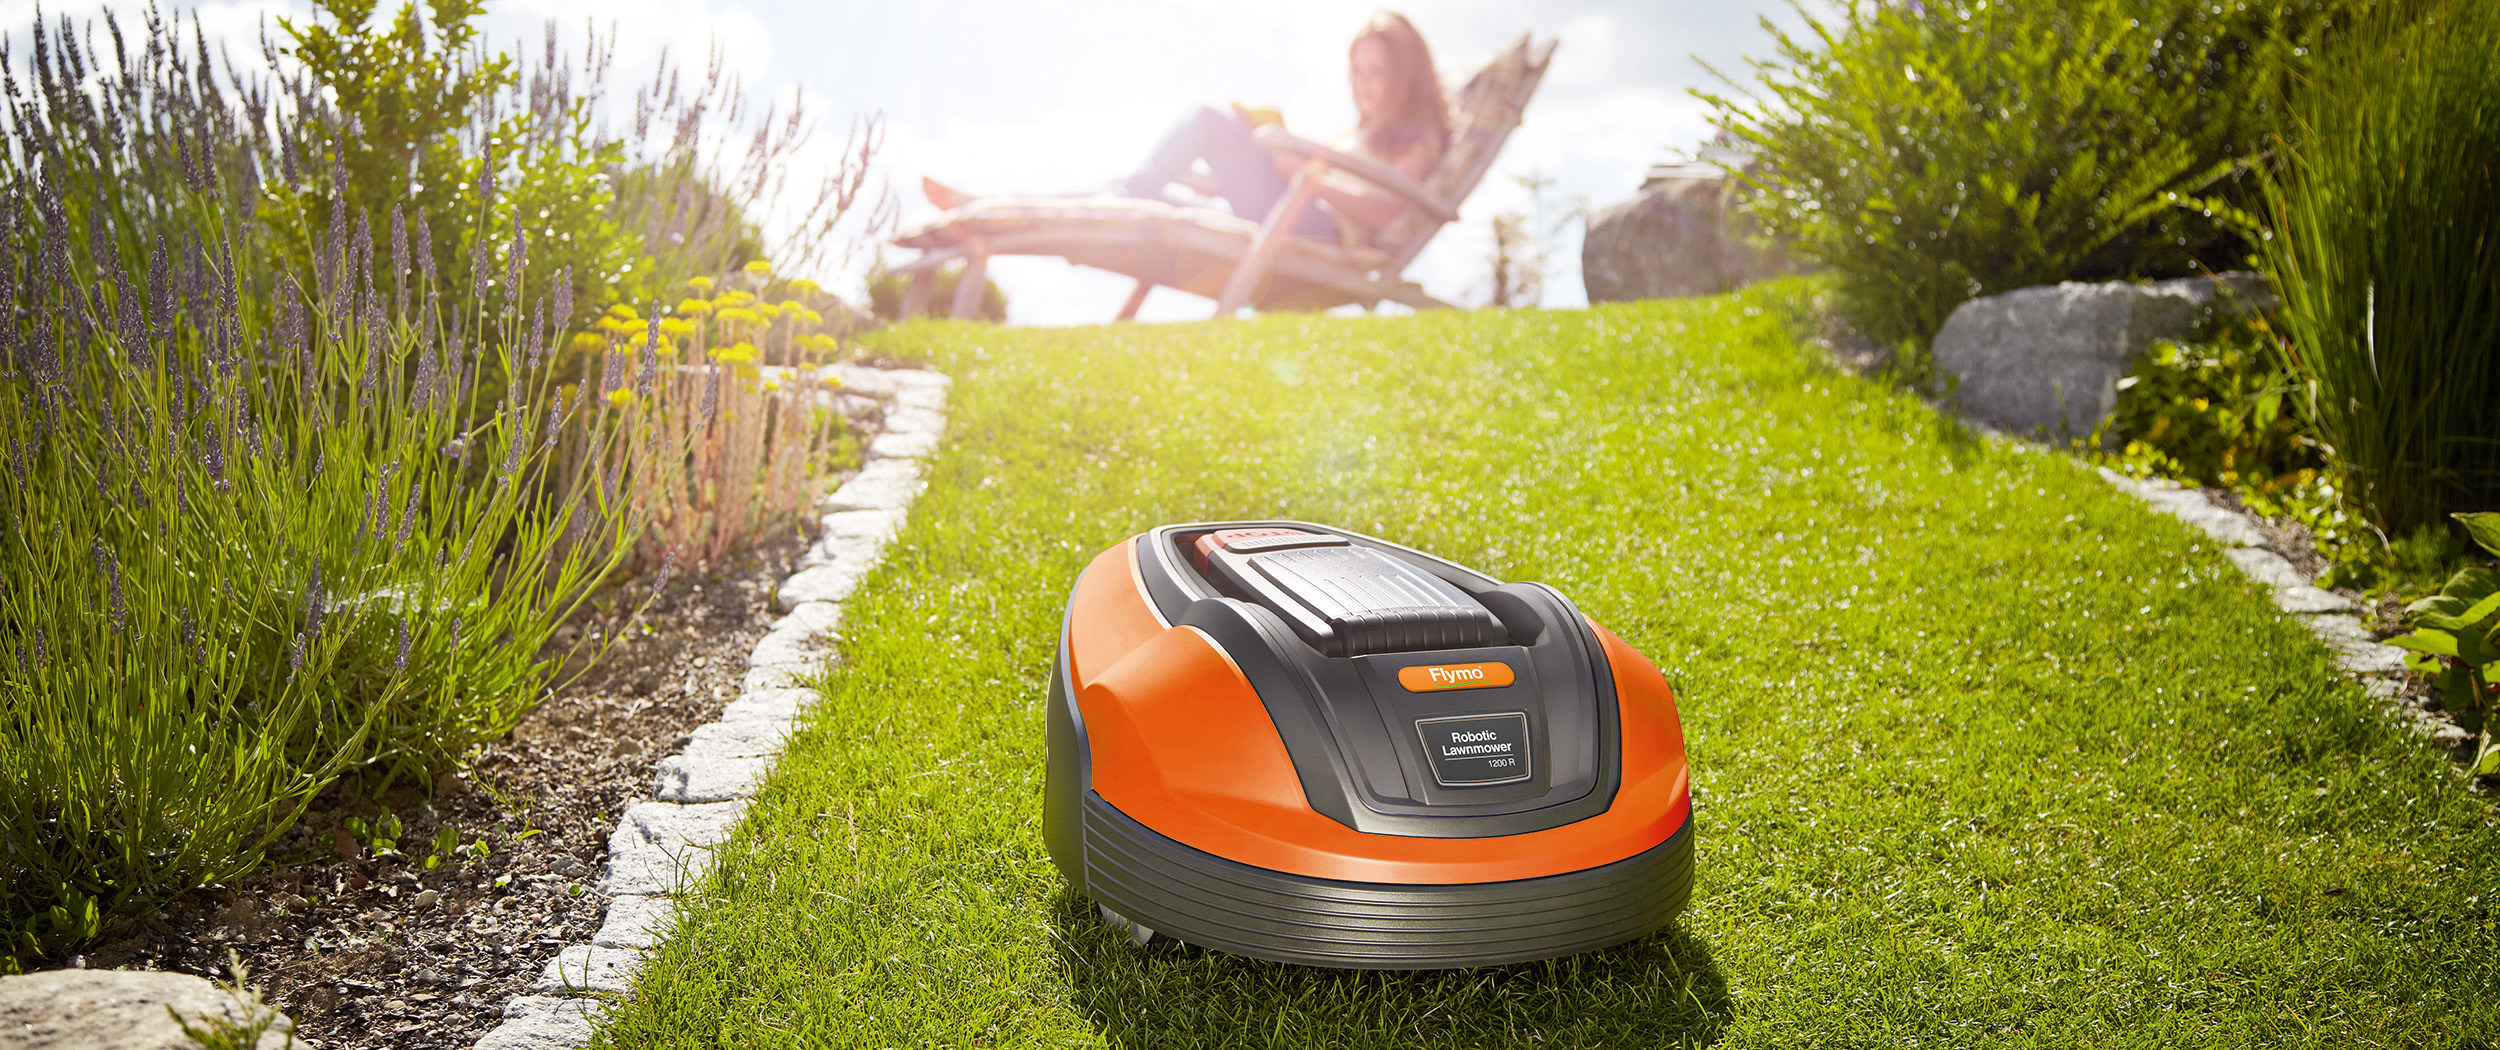 Flymo Robotic Lawnmower 1200R - 4.jpg